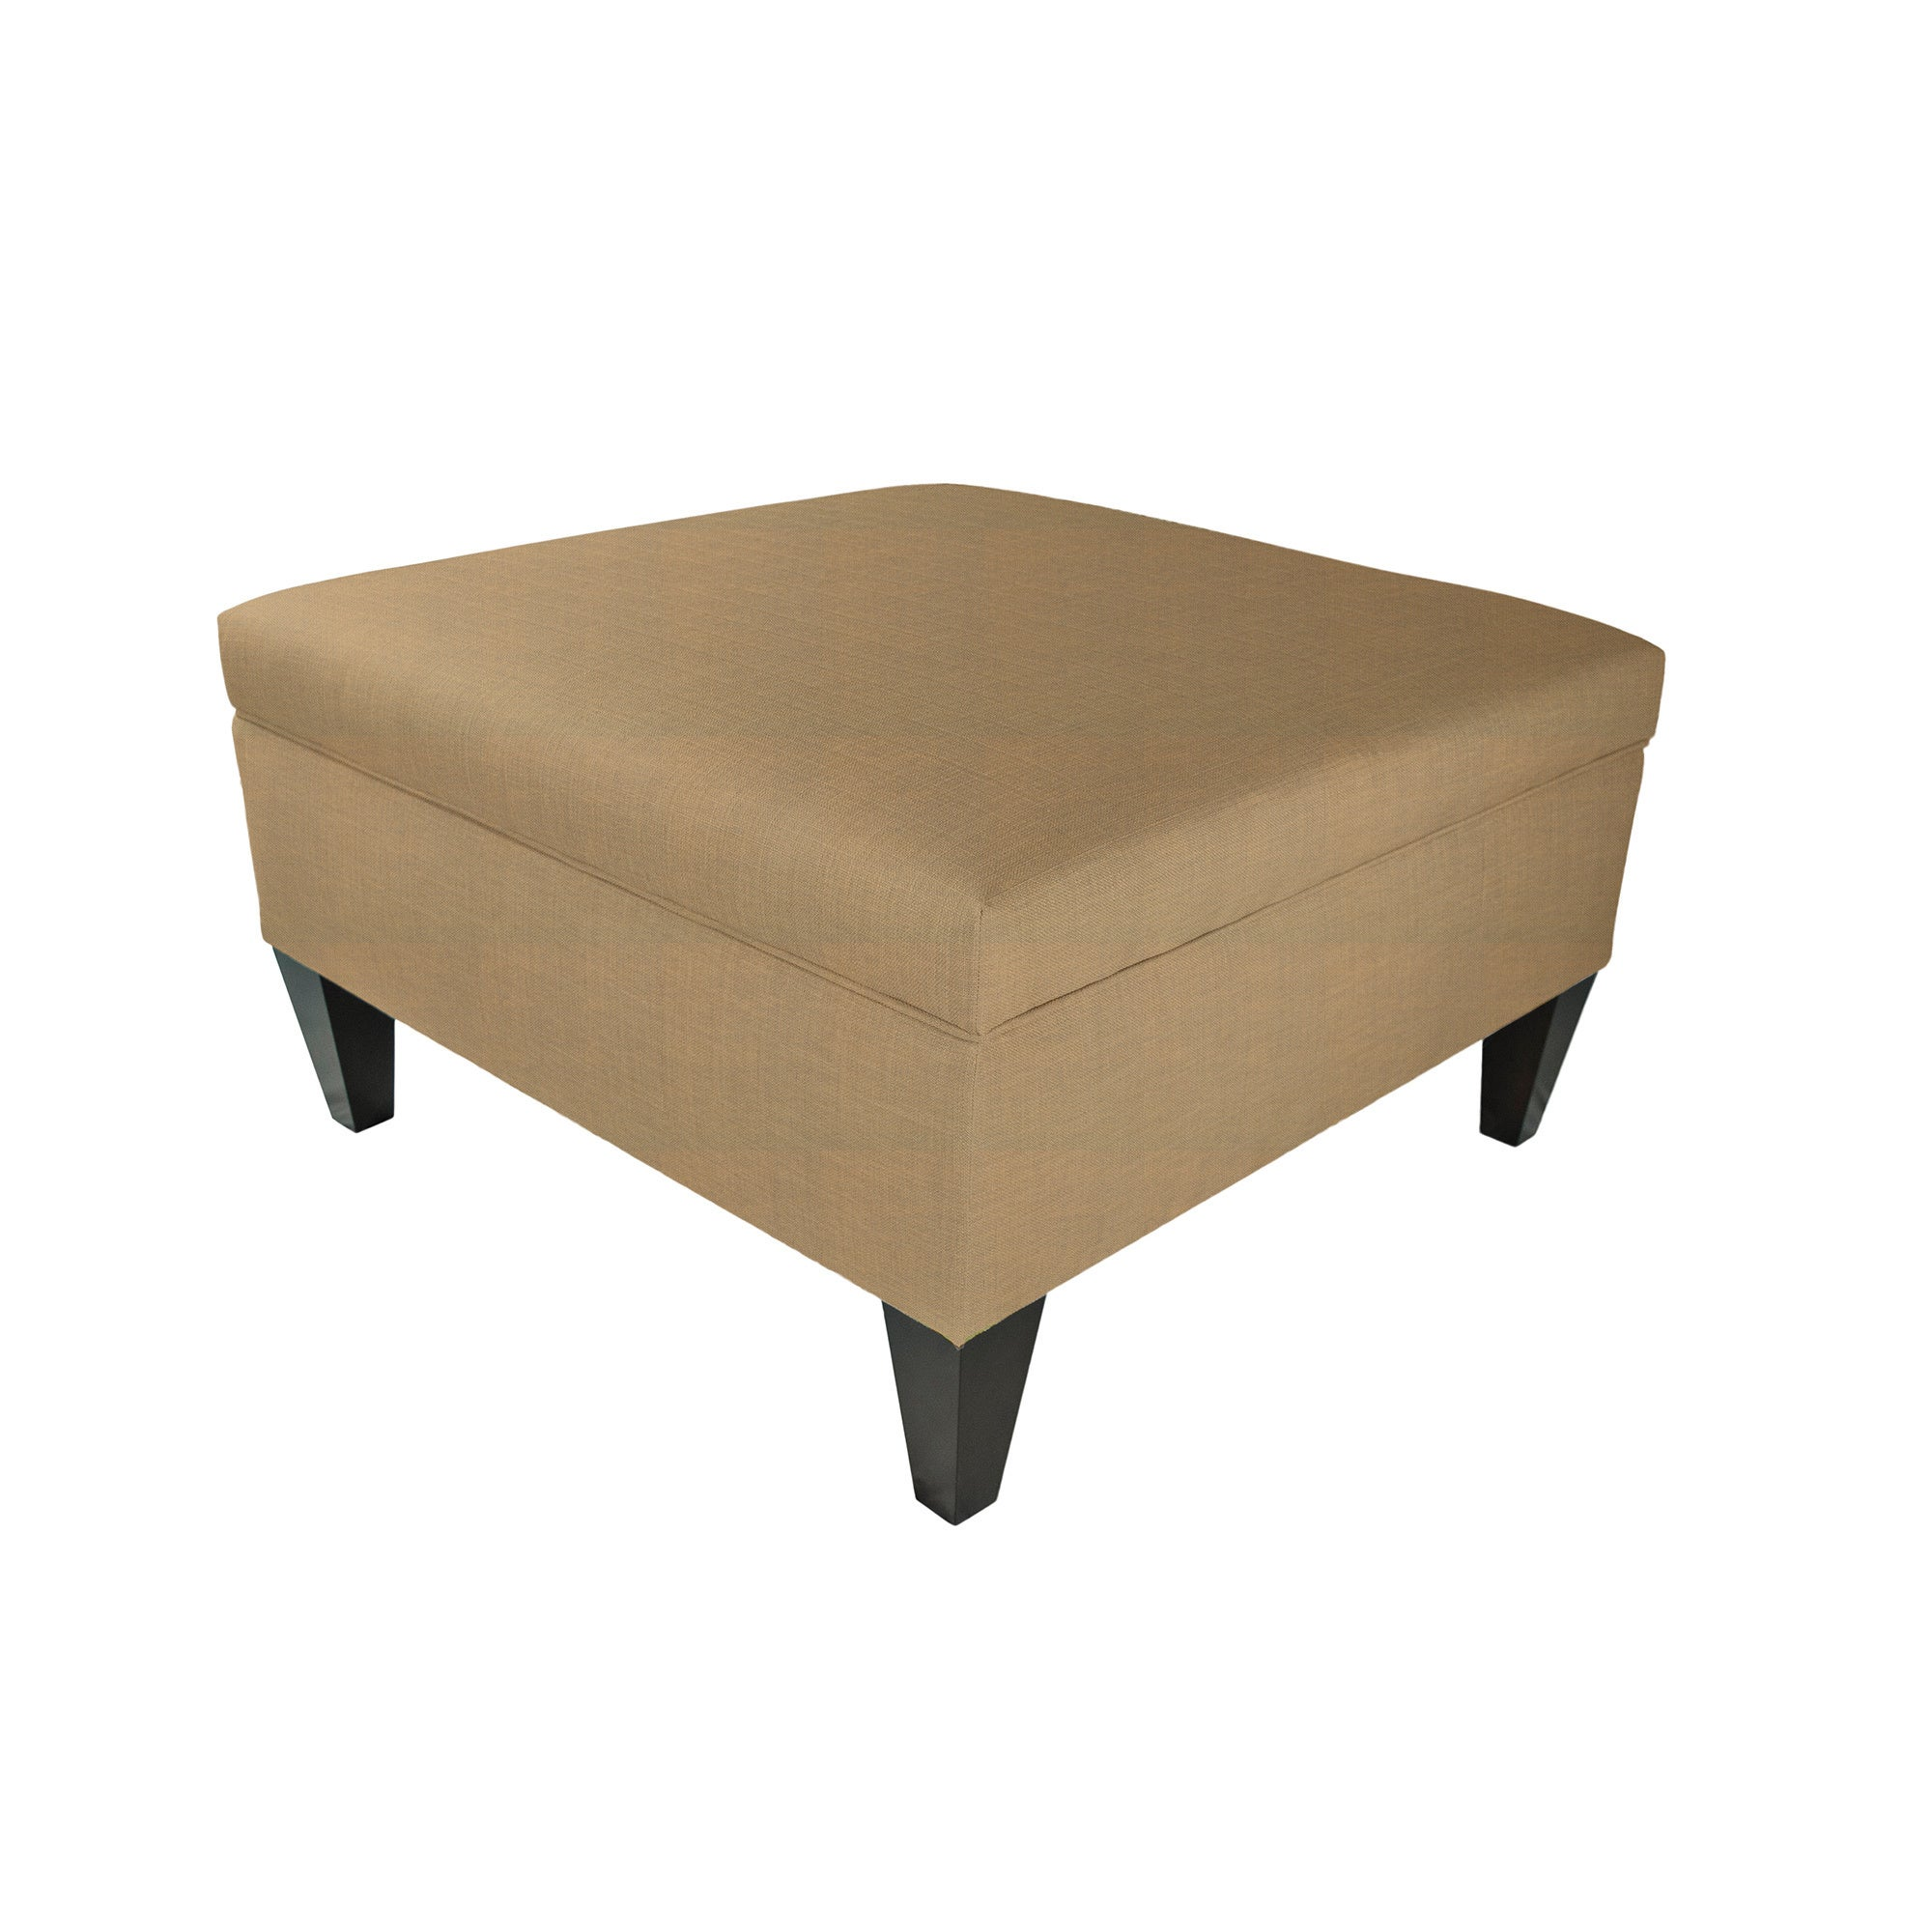 MJL Furniture Manhattan Allure Upholstered Organizational Cocktail Ottoman